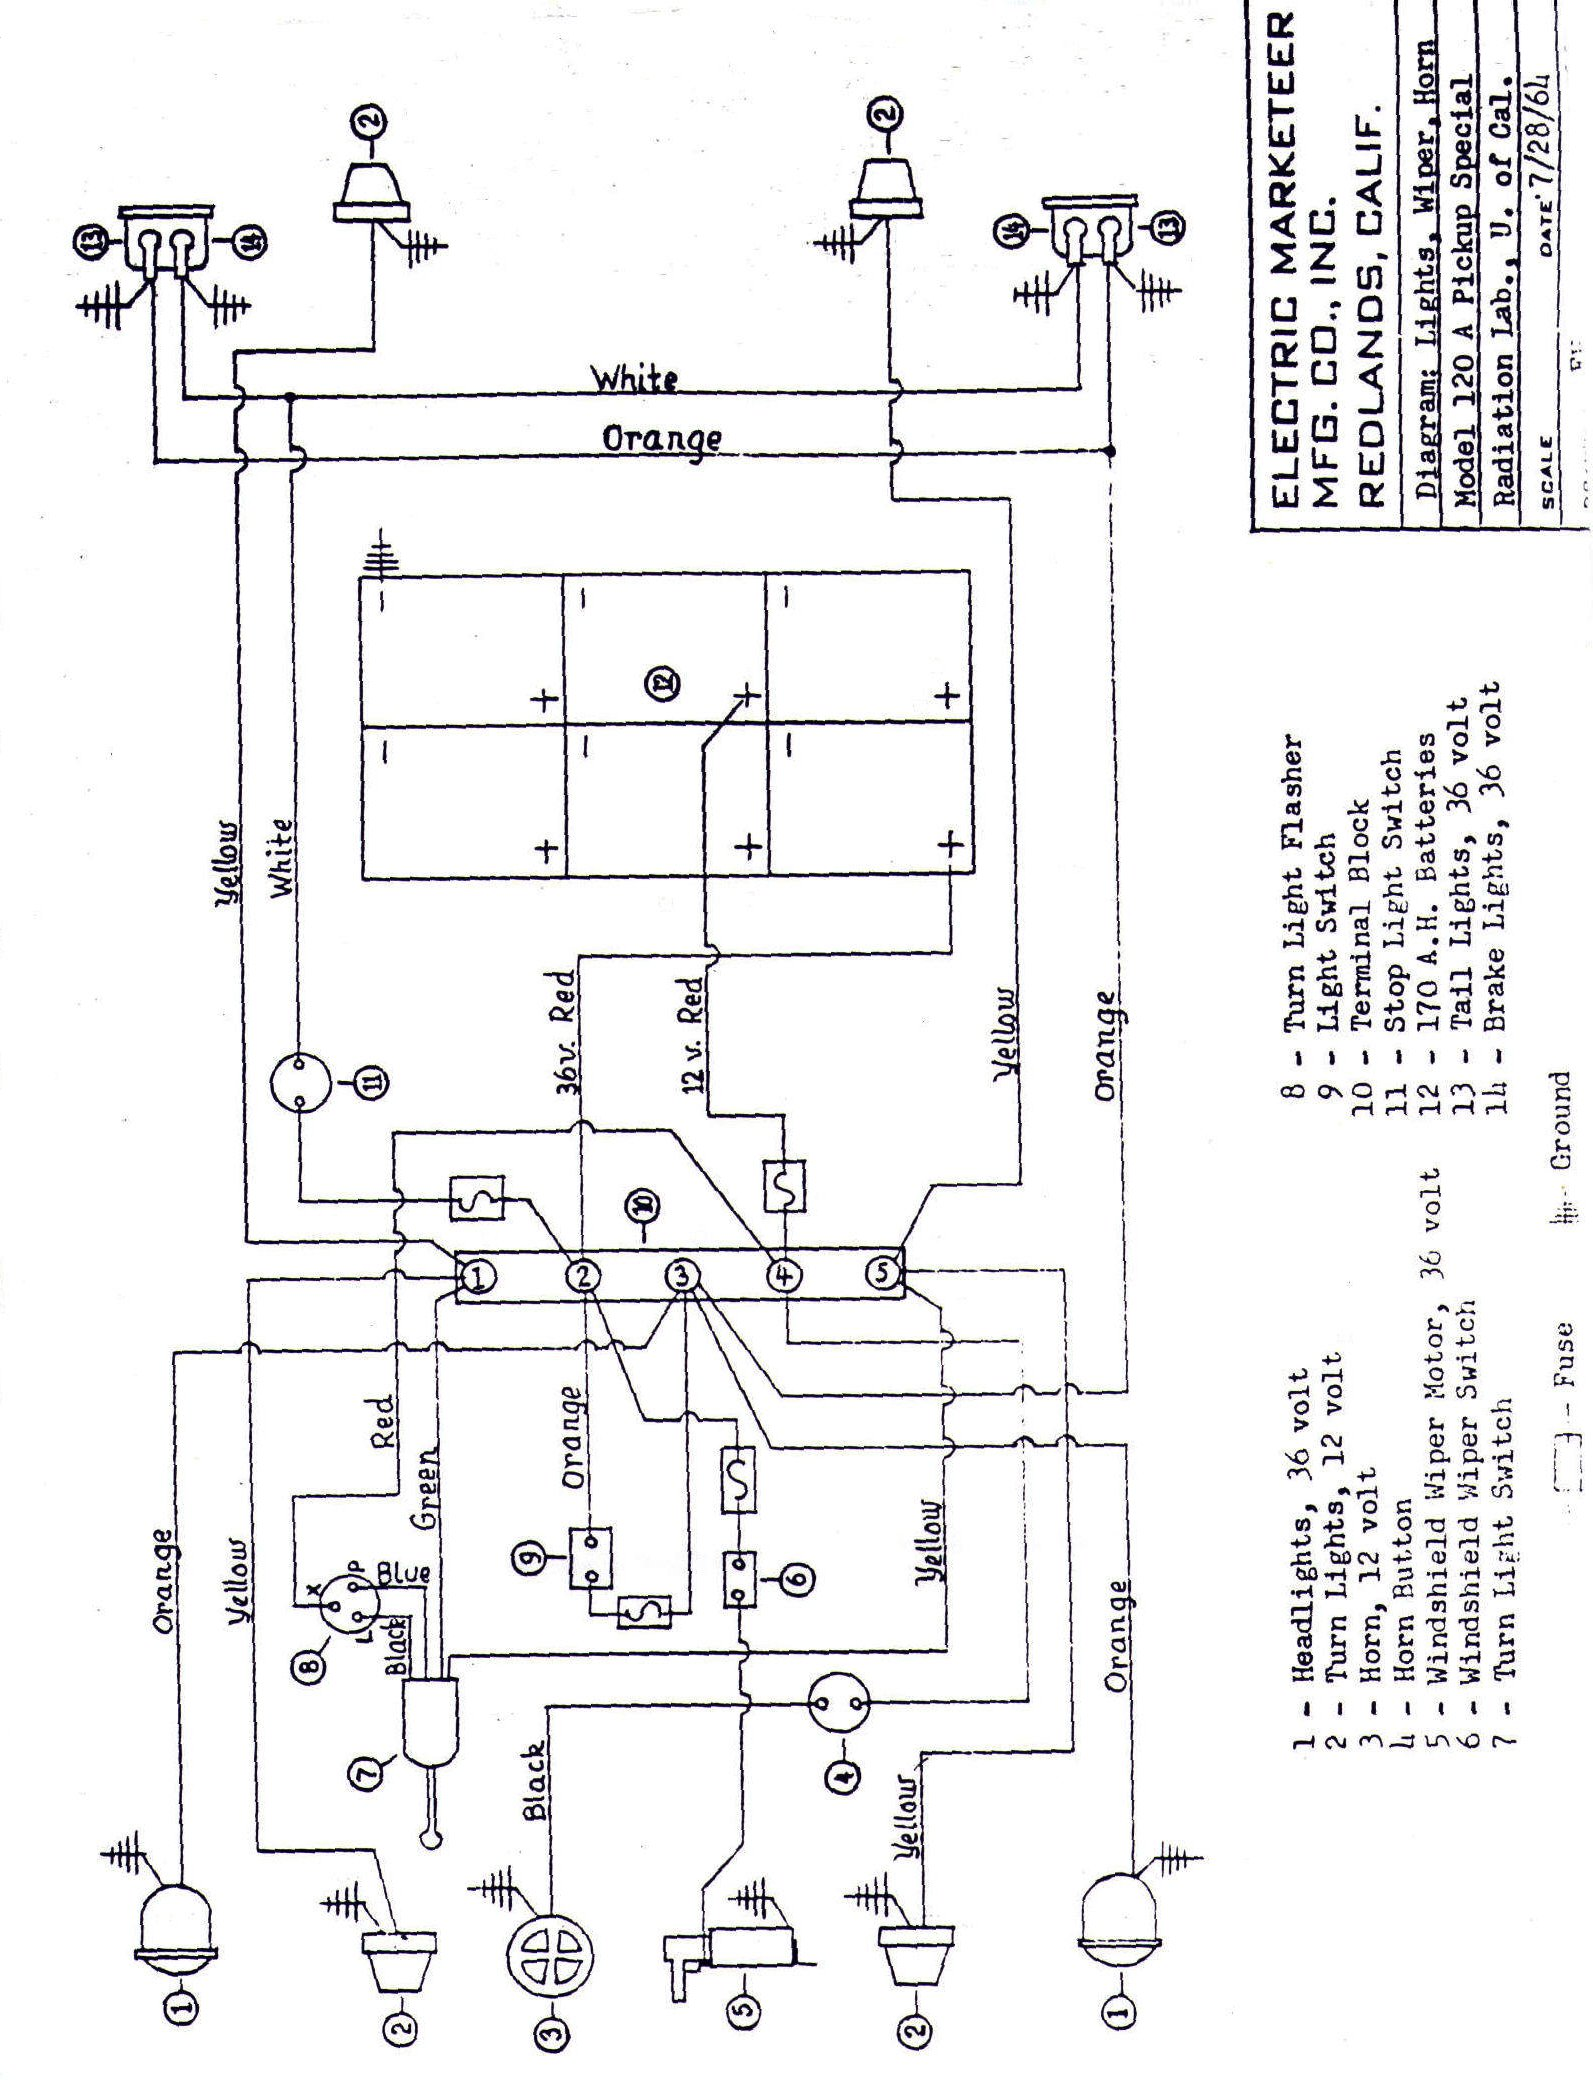 Vintage Golf Cart Wiring Diagram For Electric Inverter Circuit Diagram Youtube Bege Wiring Diagram